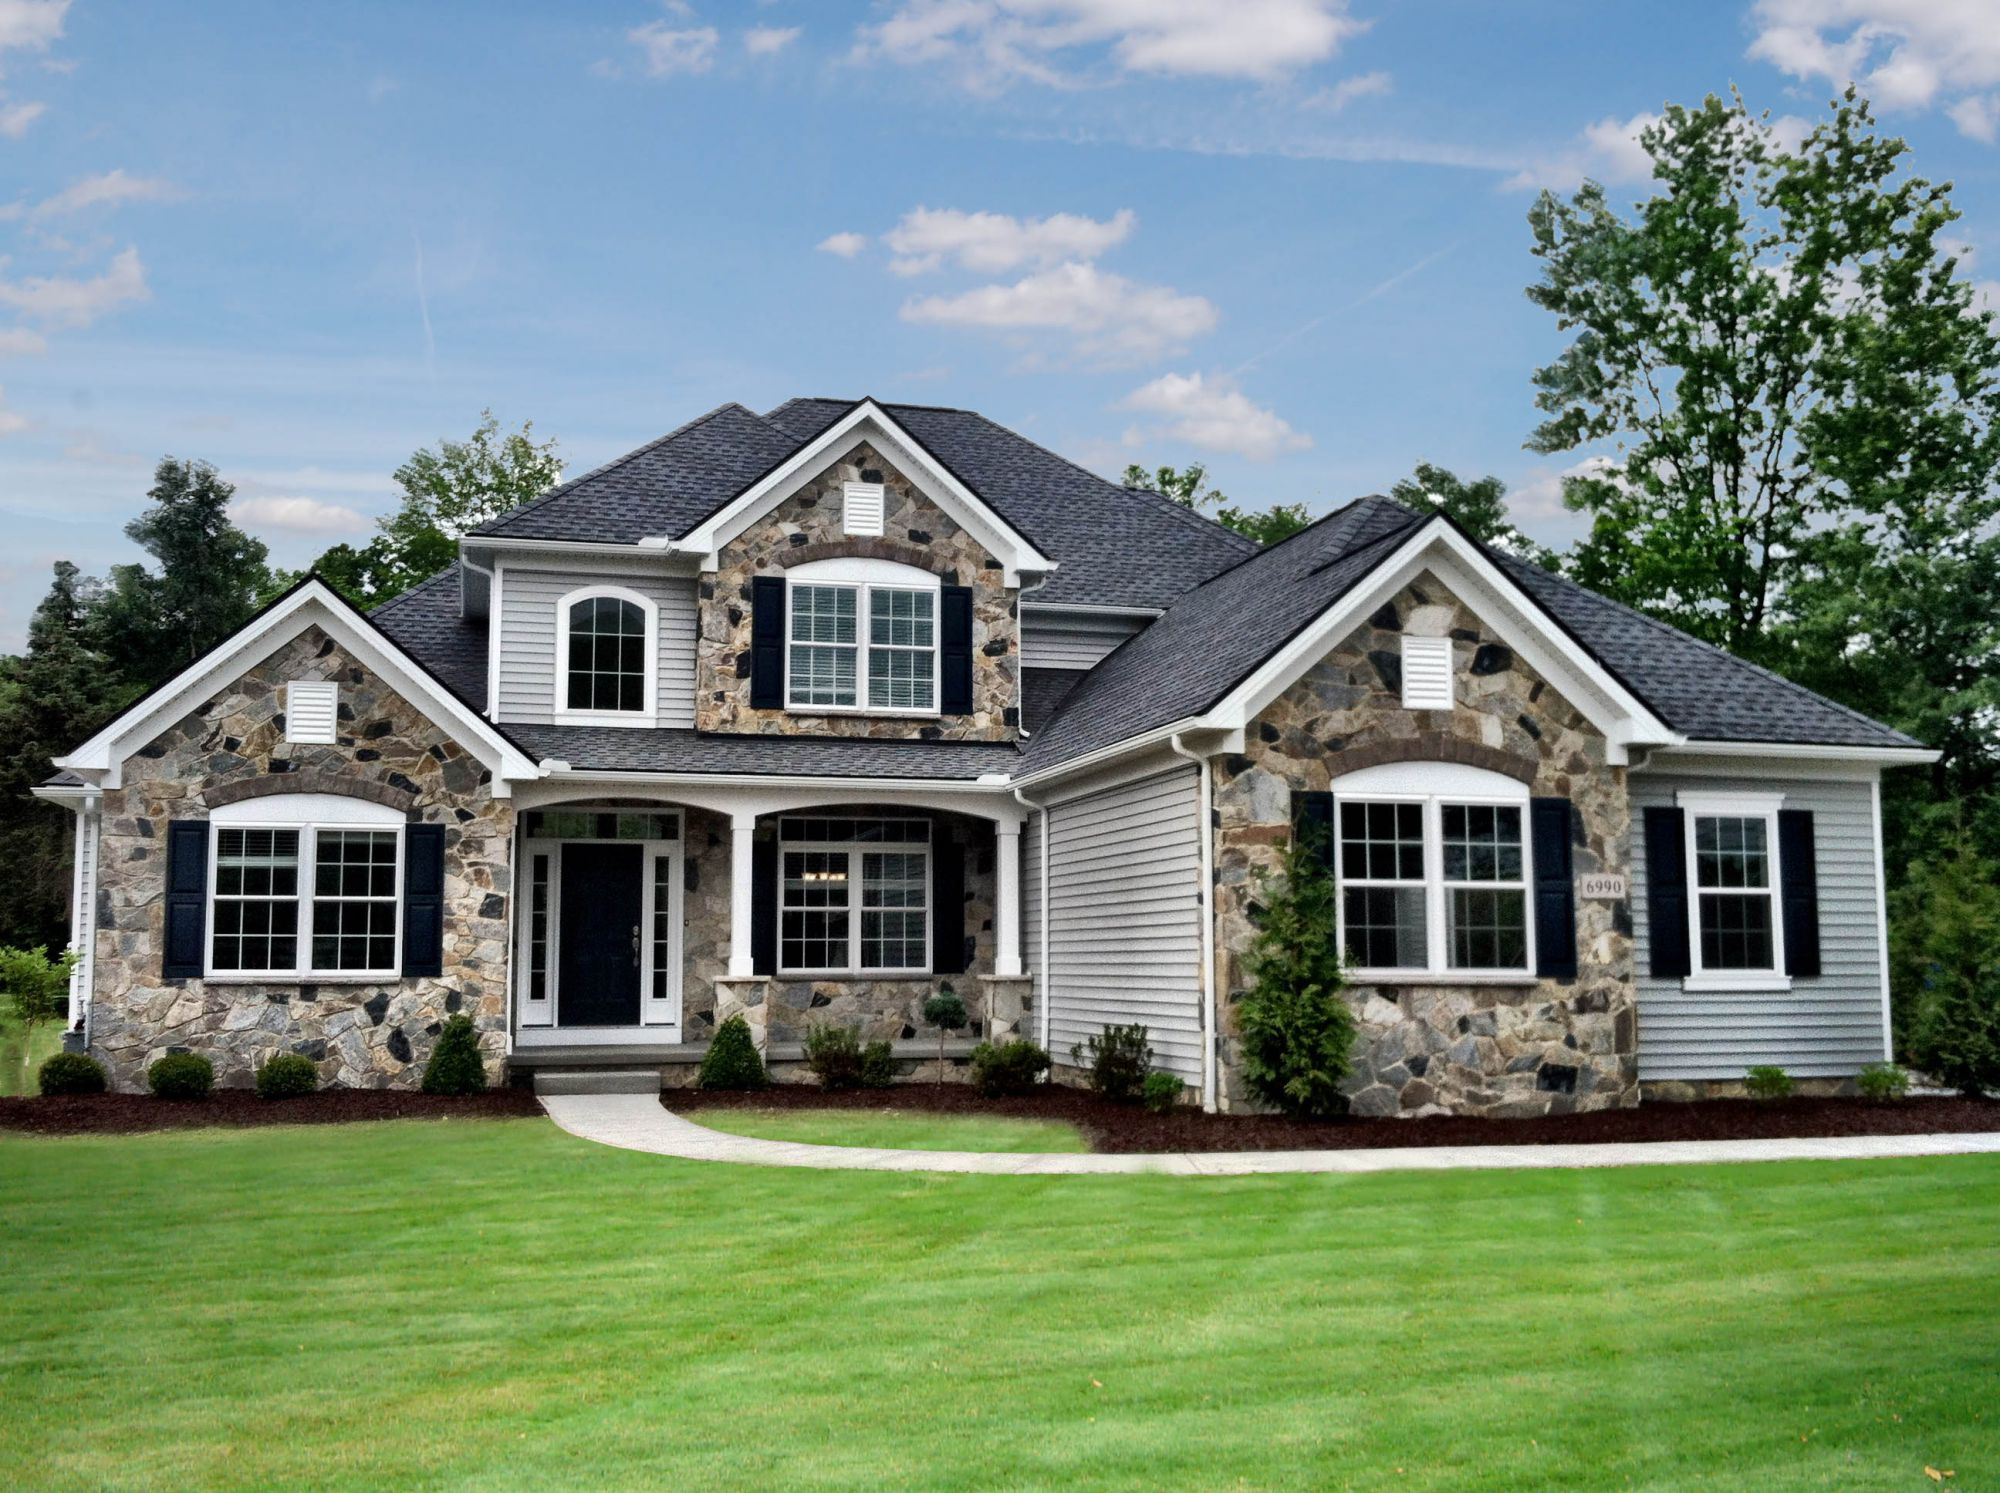 Houses for sale in cleveland ohio house plan 2017 for House plans ohio